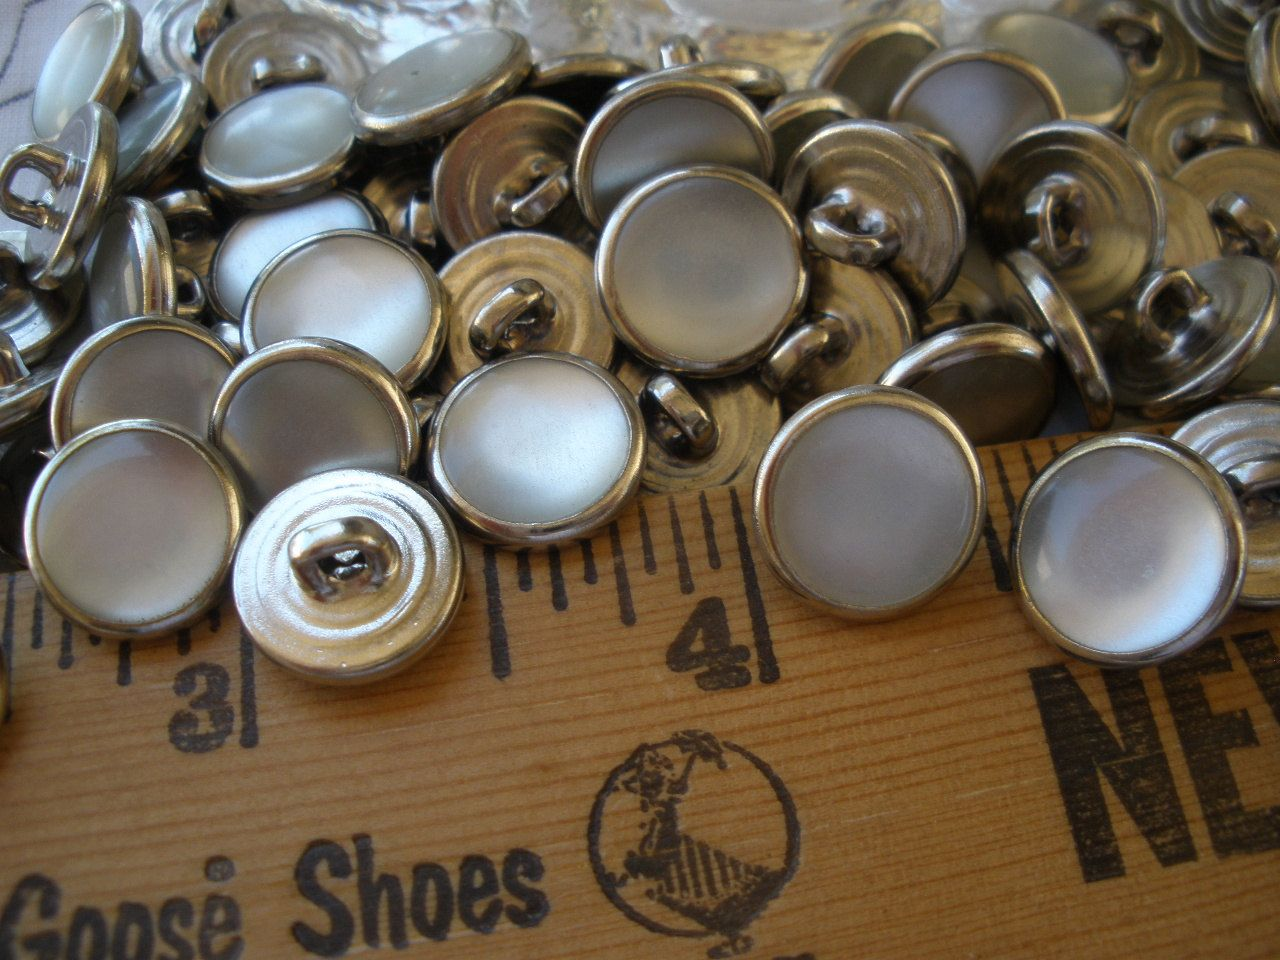 Bulk buttons for crafts - Bulk 11mm Western Shirt Buttons White Pearl Snap Nickel Shank 7 16 Metal 18l Poly Nickel Pearly Inset Sewing Crafts Cowboy 24 Buttons